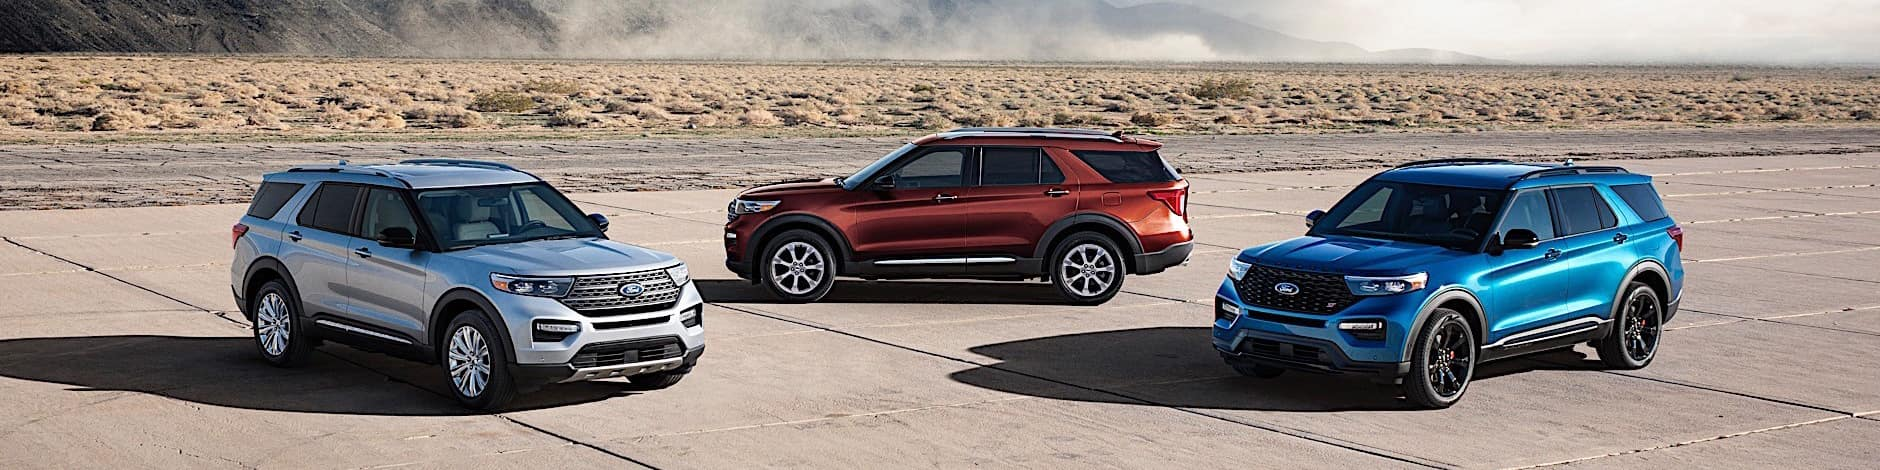 2021 Ford Explorer For Sale in Los Angeles